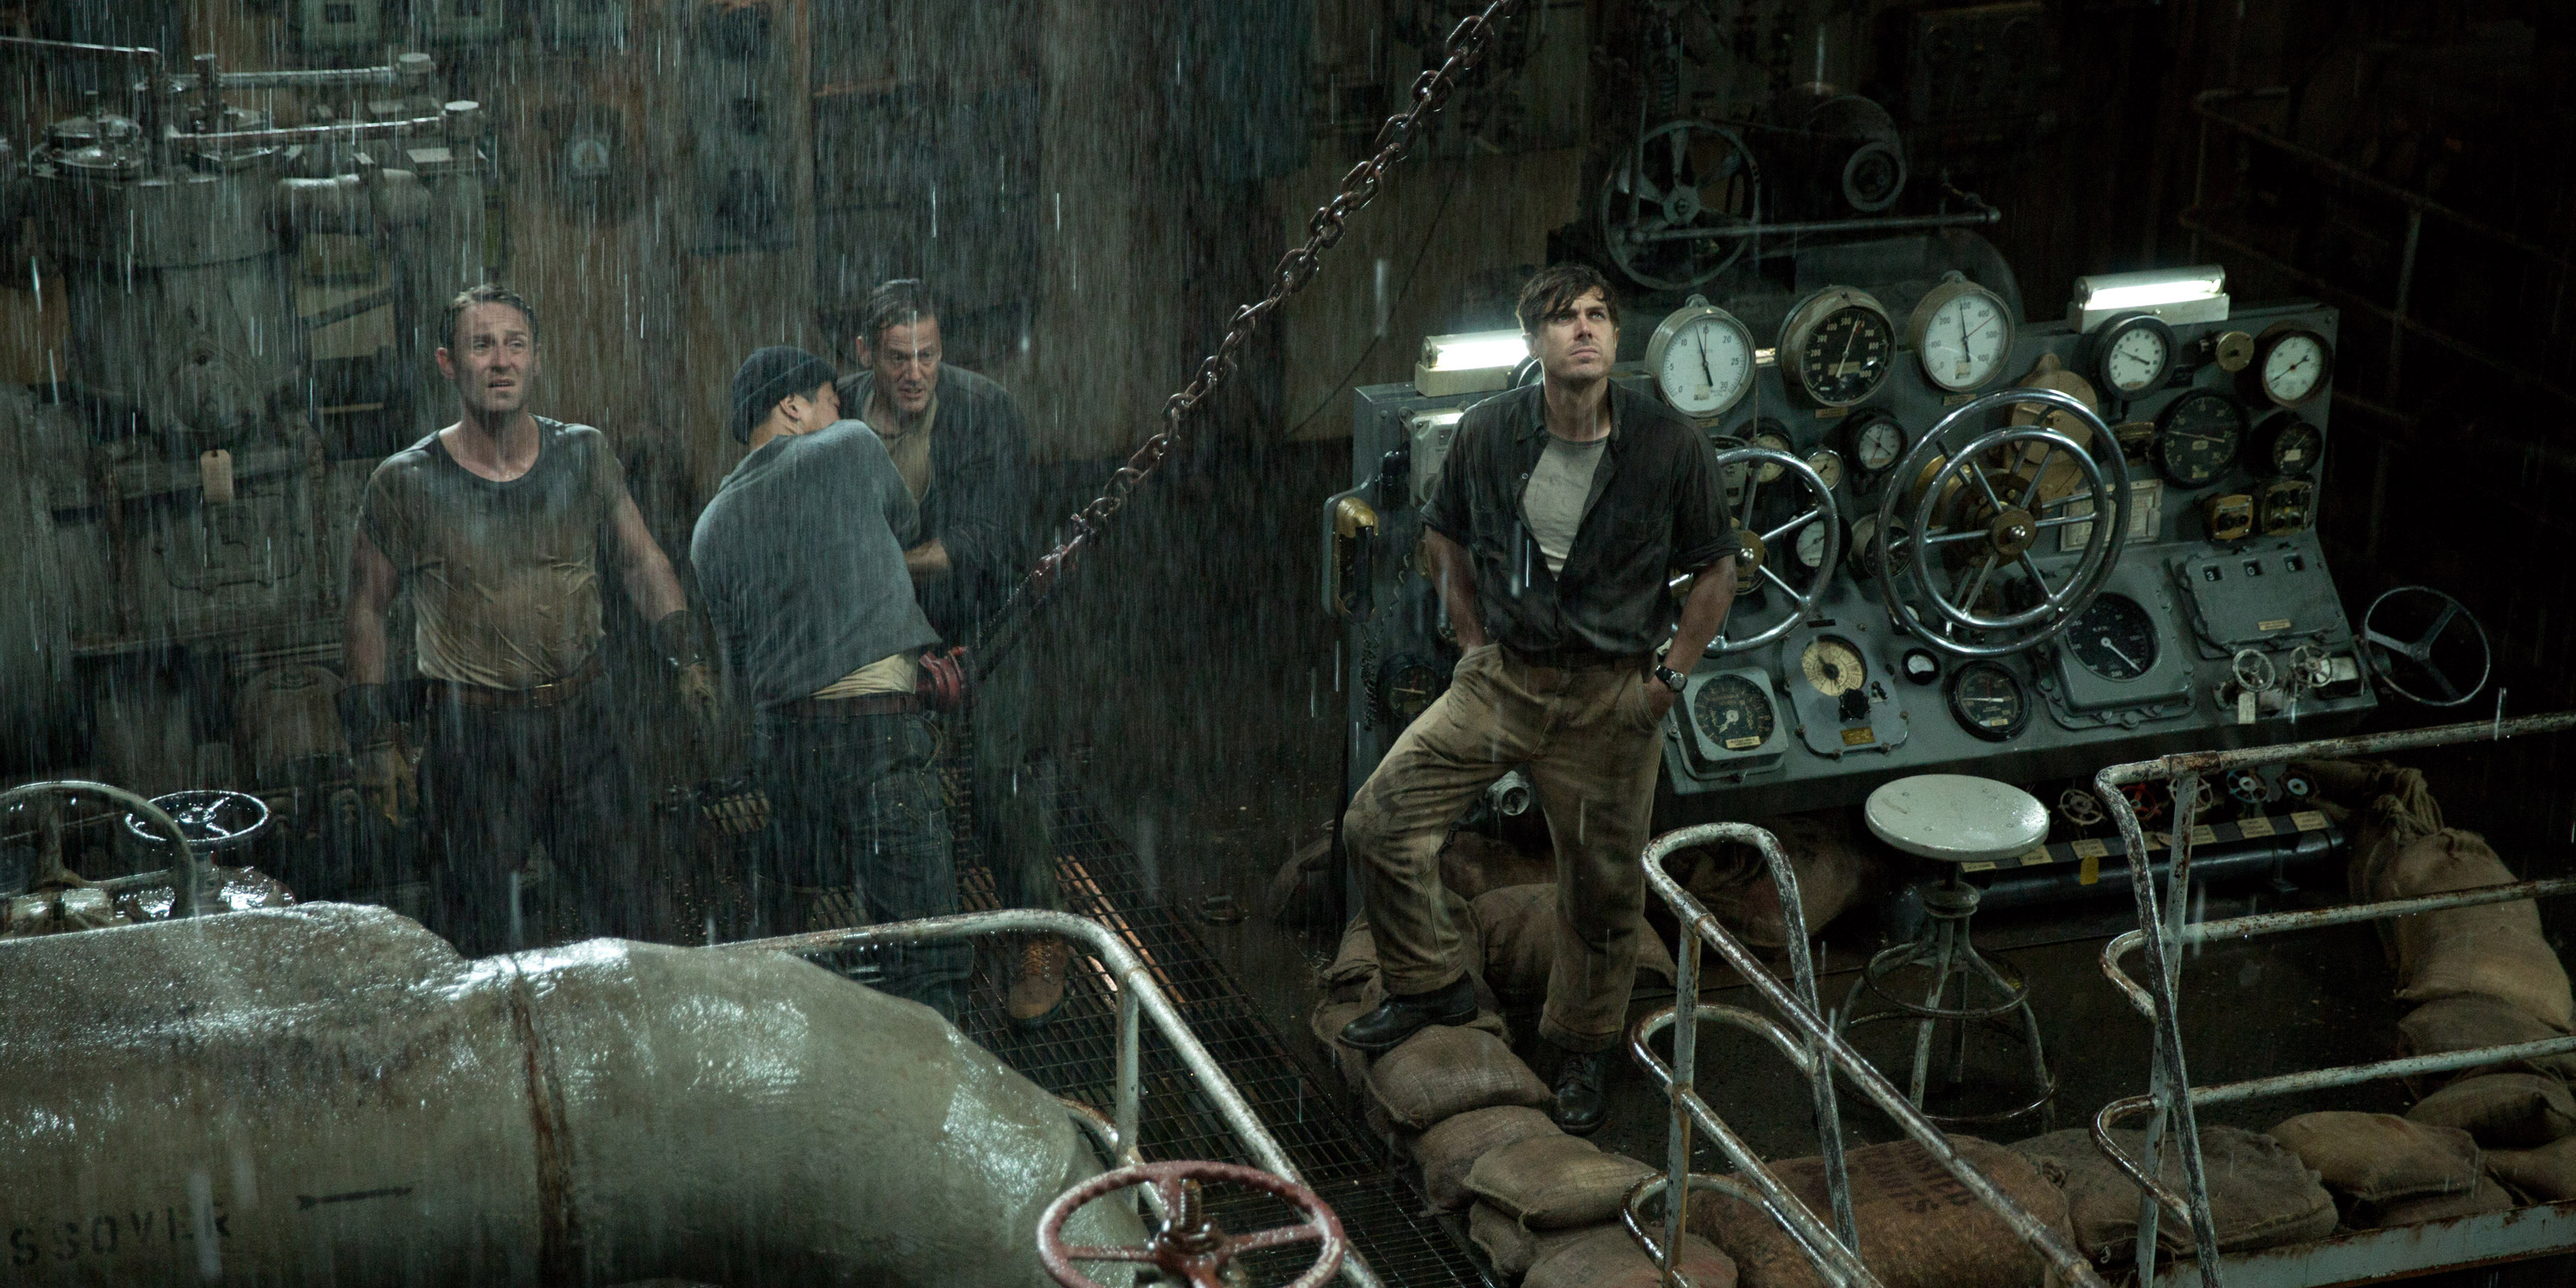 The Finest Hours wallpapers, Movie, HQ The Finest Hours pictures | 4K  Wallpapers 2019